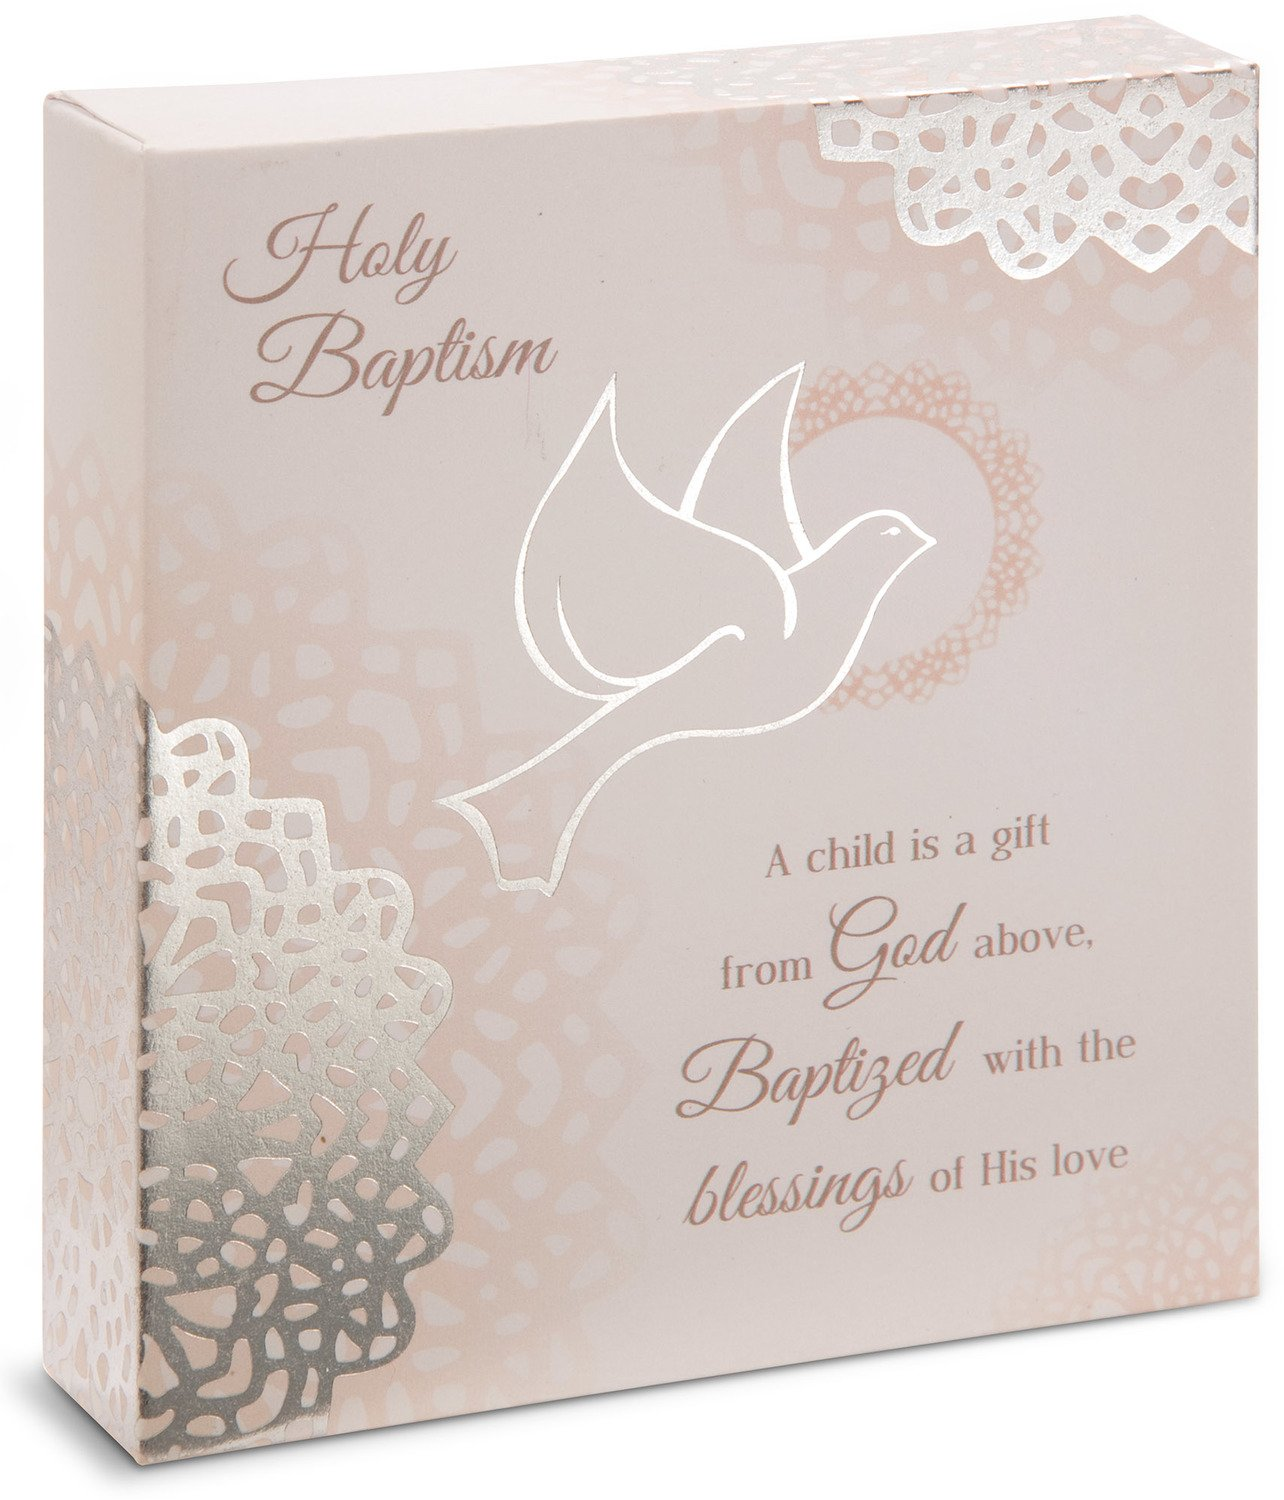 Pavilion Gift Company Light Your Way Every Day Personalizable Catholic Dove Baptism Plaque, 4'' x 4.5''